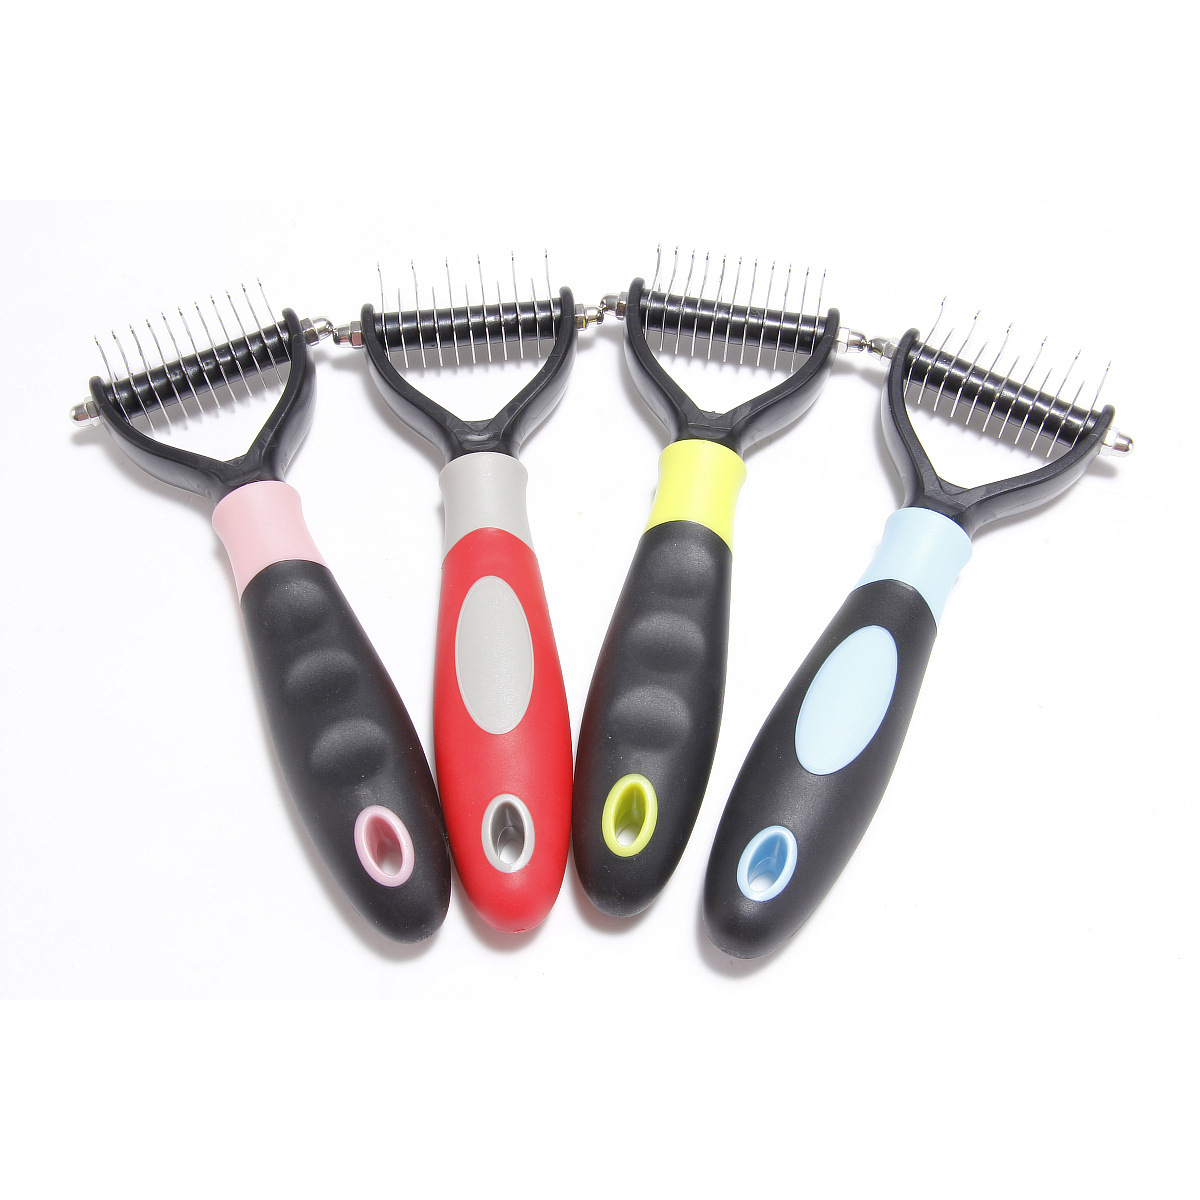 1 Pcs Dog Cat Puppy Pets Comb Brush Fur Knot Cutter Remove Rake Grooming Shedding Brush Comb Pet Beauty Supplies